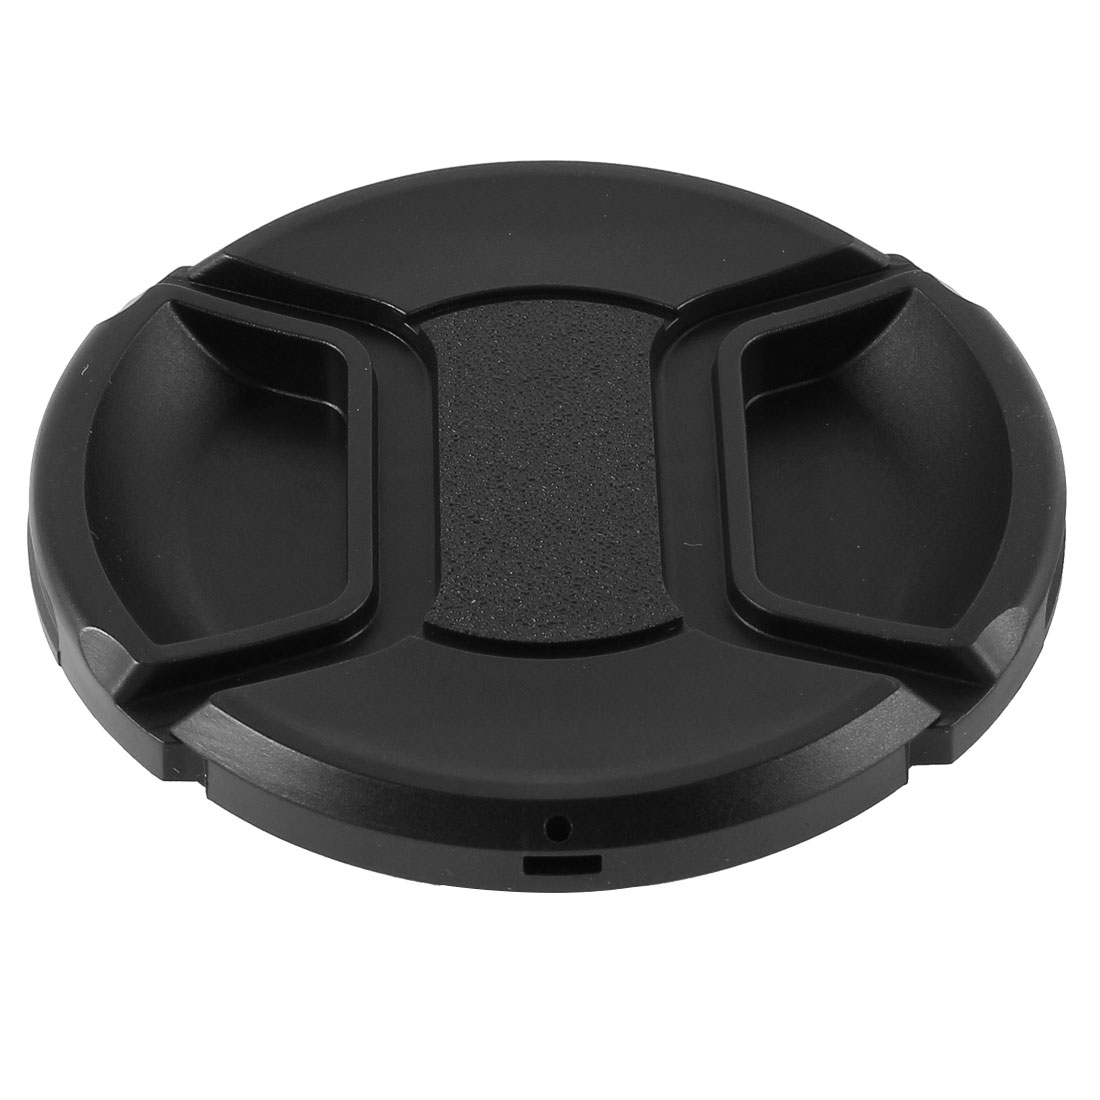 Univeral 72mm Center Pinch Front Lens Cap for DSLR Camera